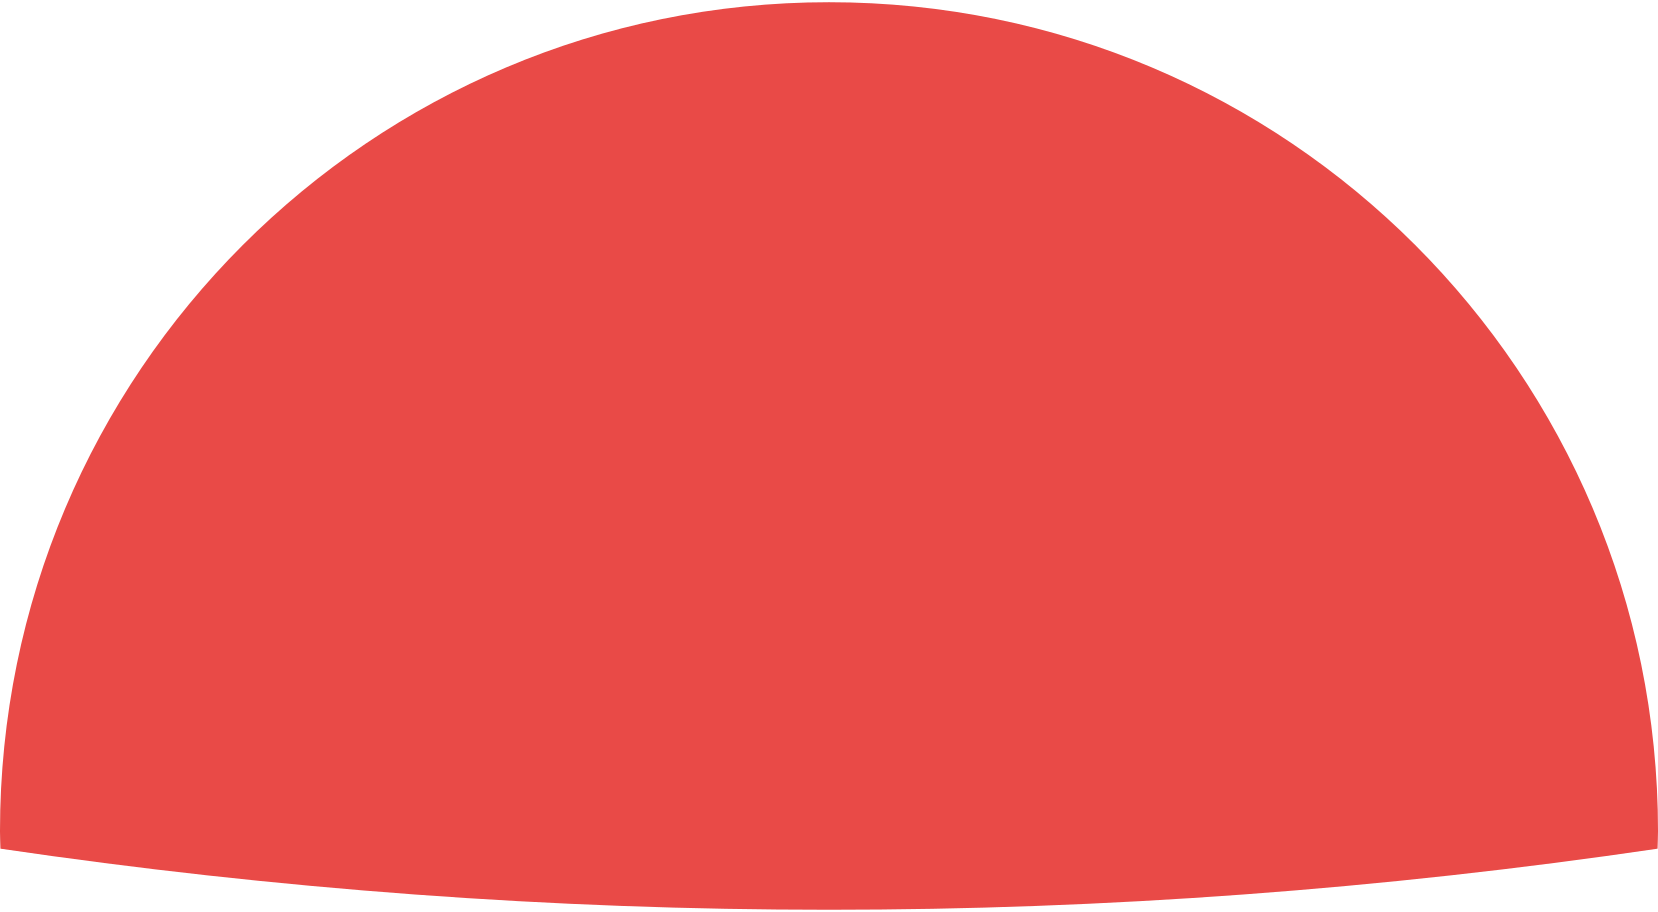 style semicircle red Vector images in PNG and SVG   Icons8 Illustrations